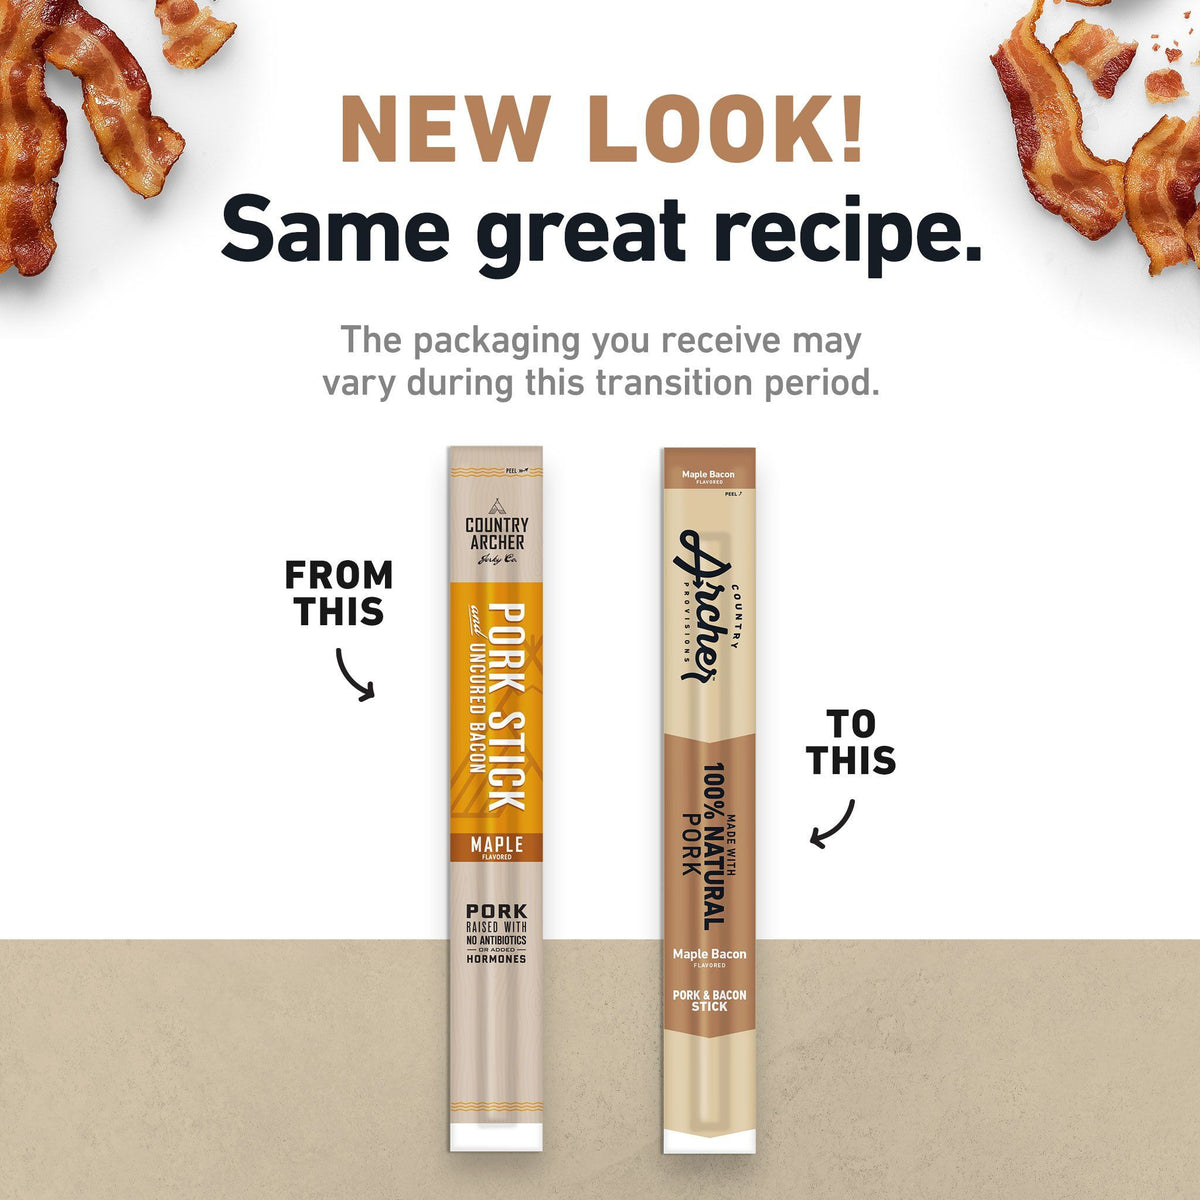 Pork and Bacon Meat Stick old packaging to new- product carousel image